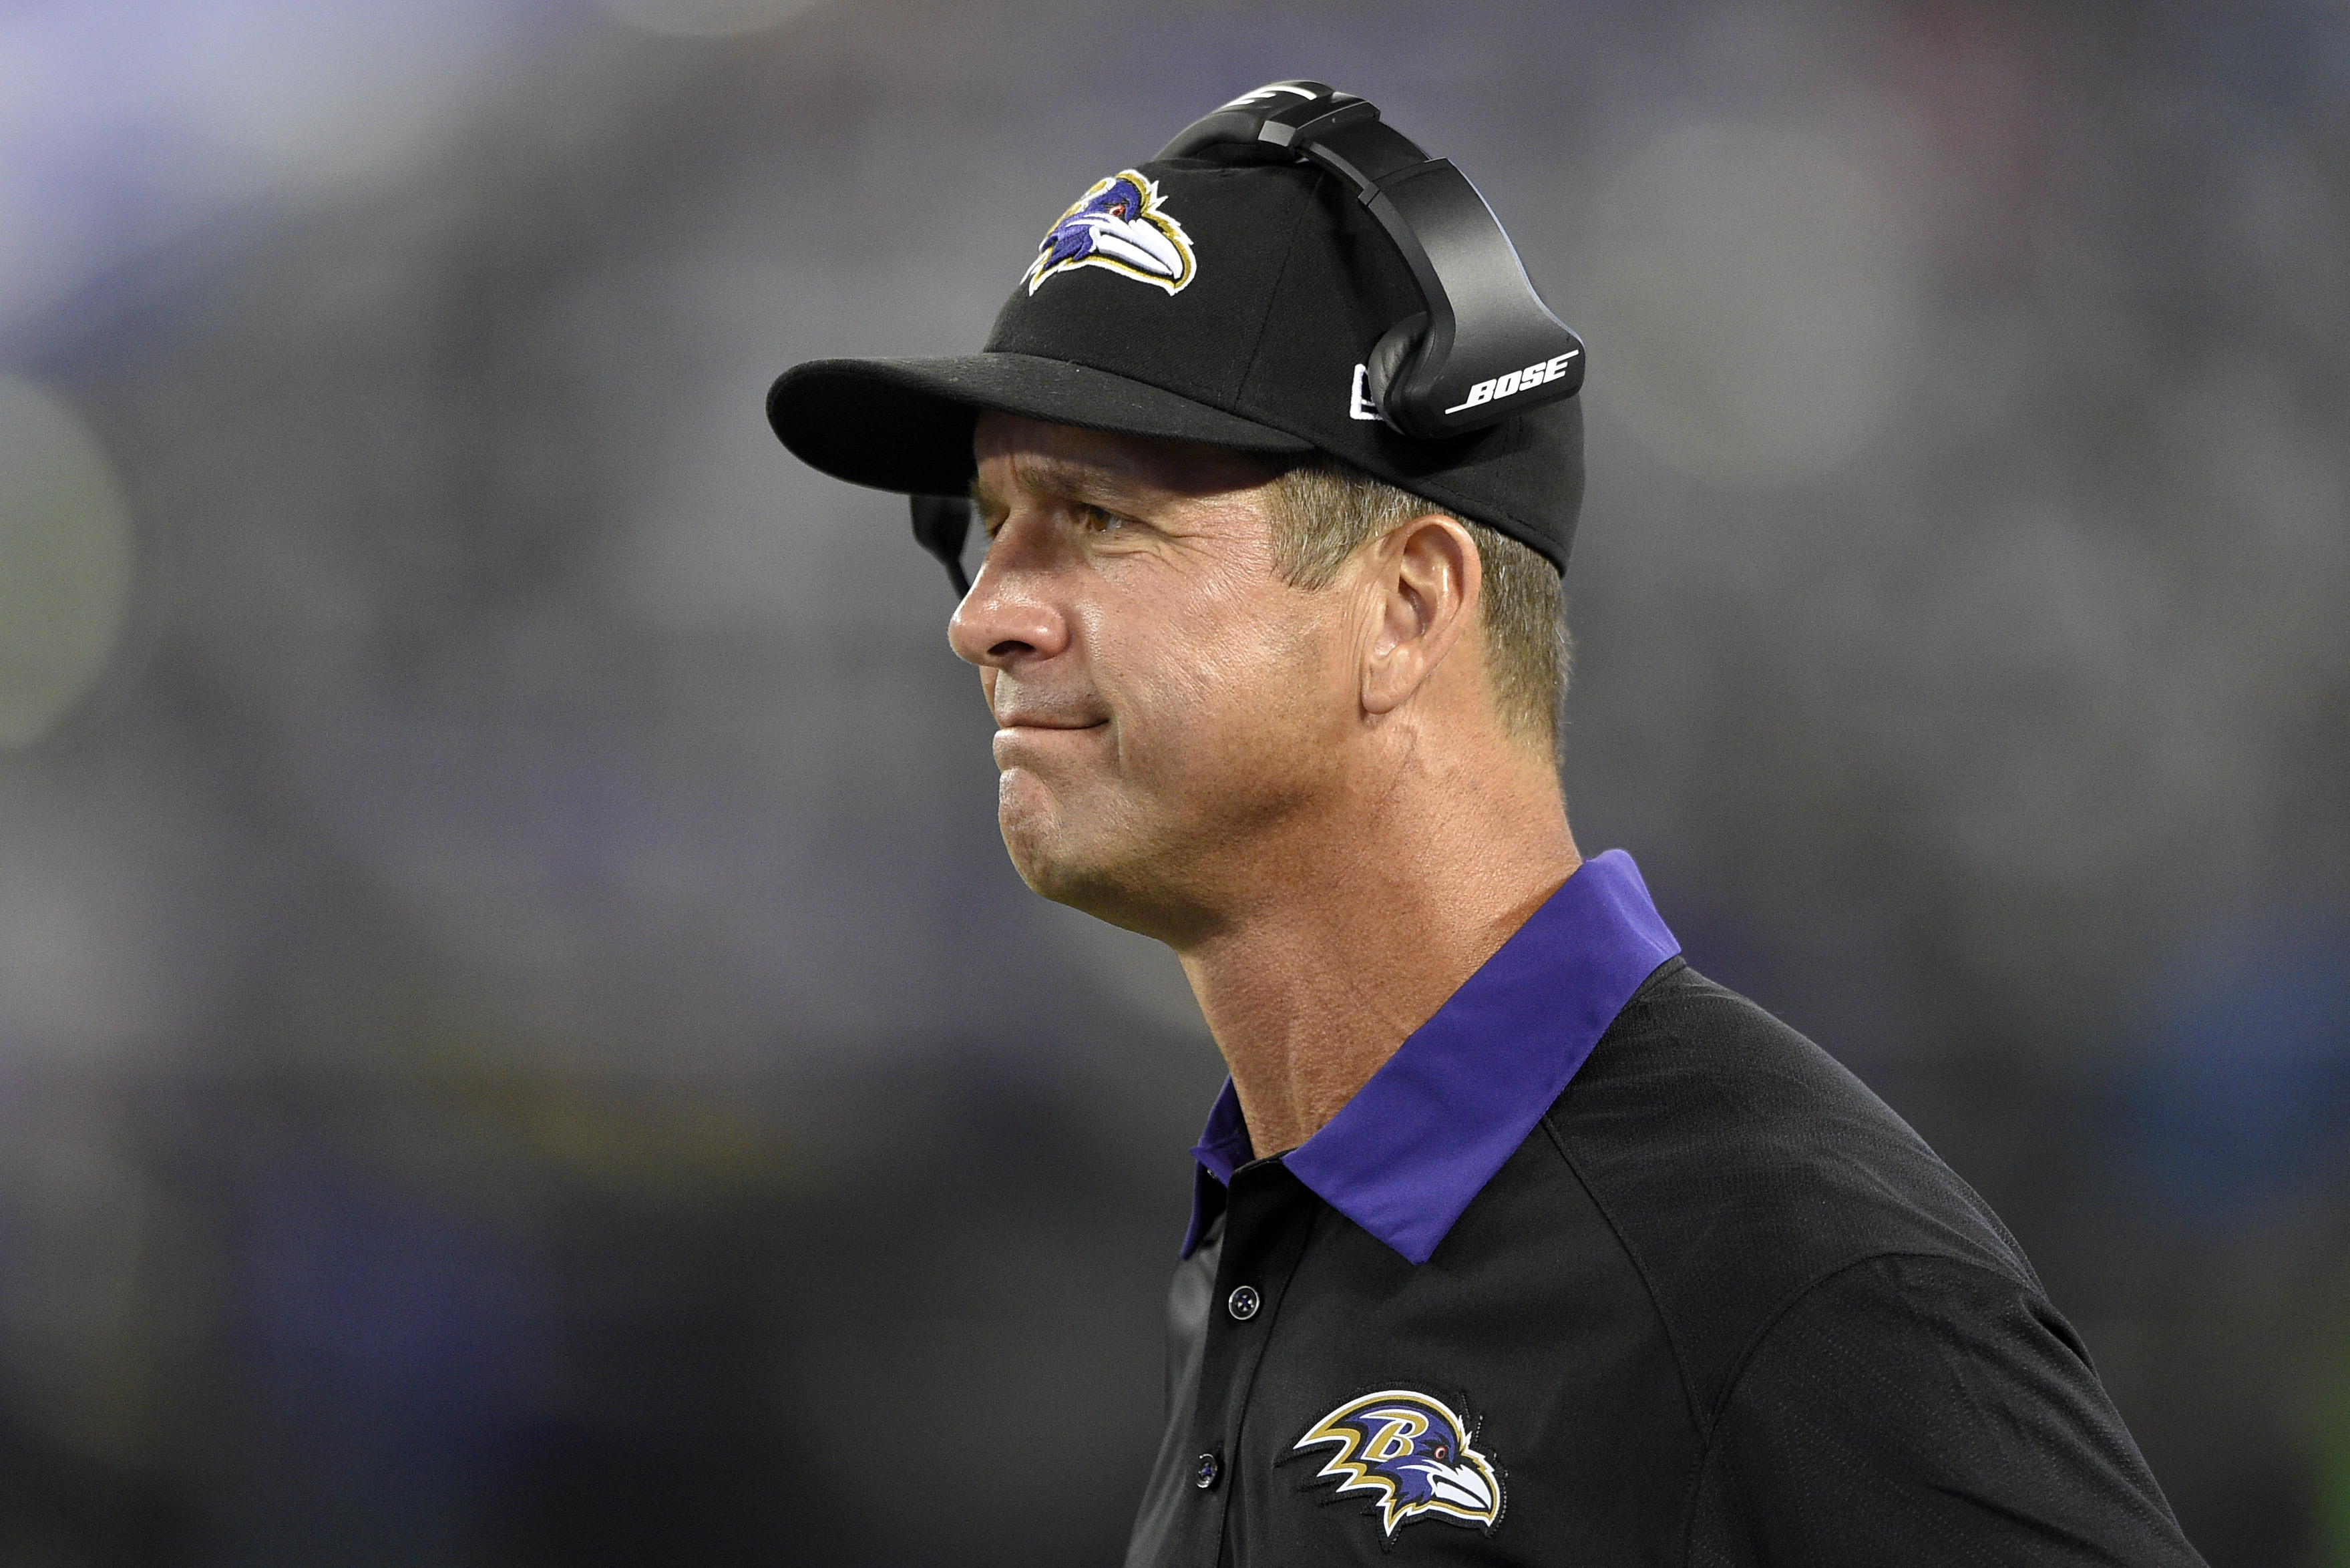 FILE - In this Aug. 29, 2015, file photo, Baltimore Ravens head coach John Harbaugh watches from the sideline in the second half of a preseason NFL football game against the Washington Redskins in Baltimore. USA Football's successful program teaching the